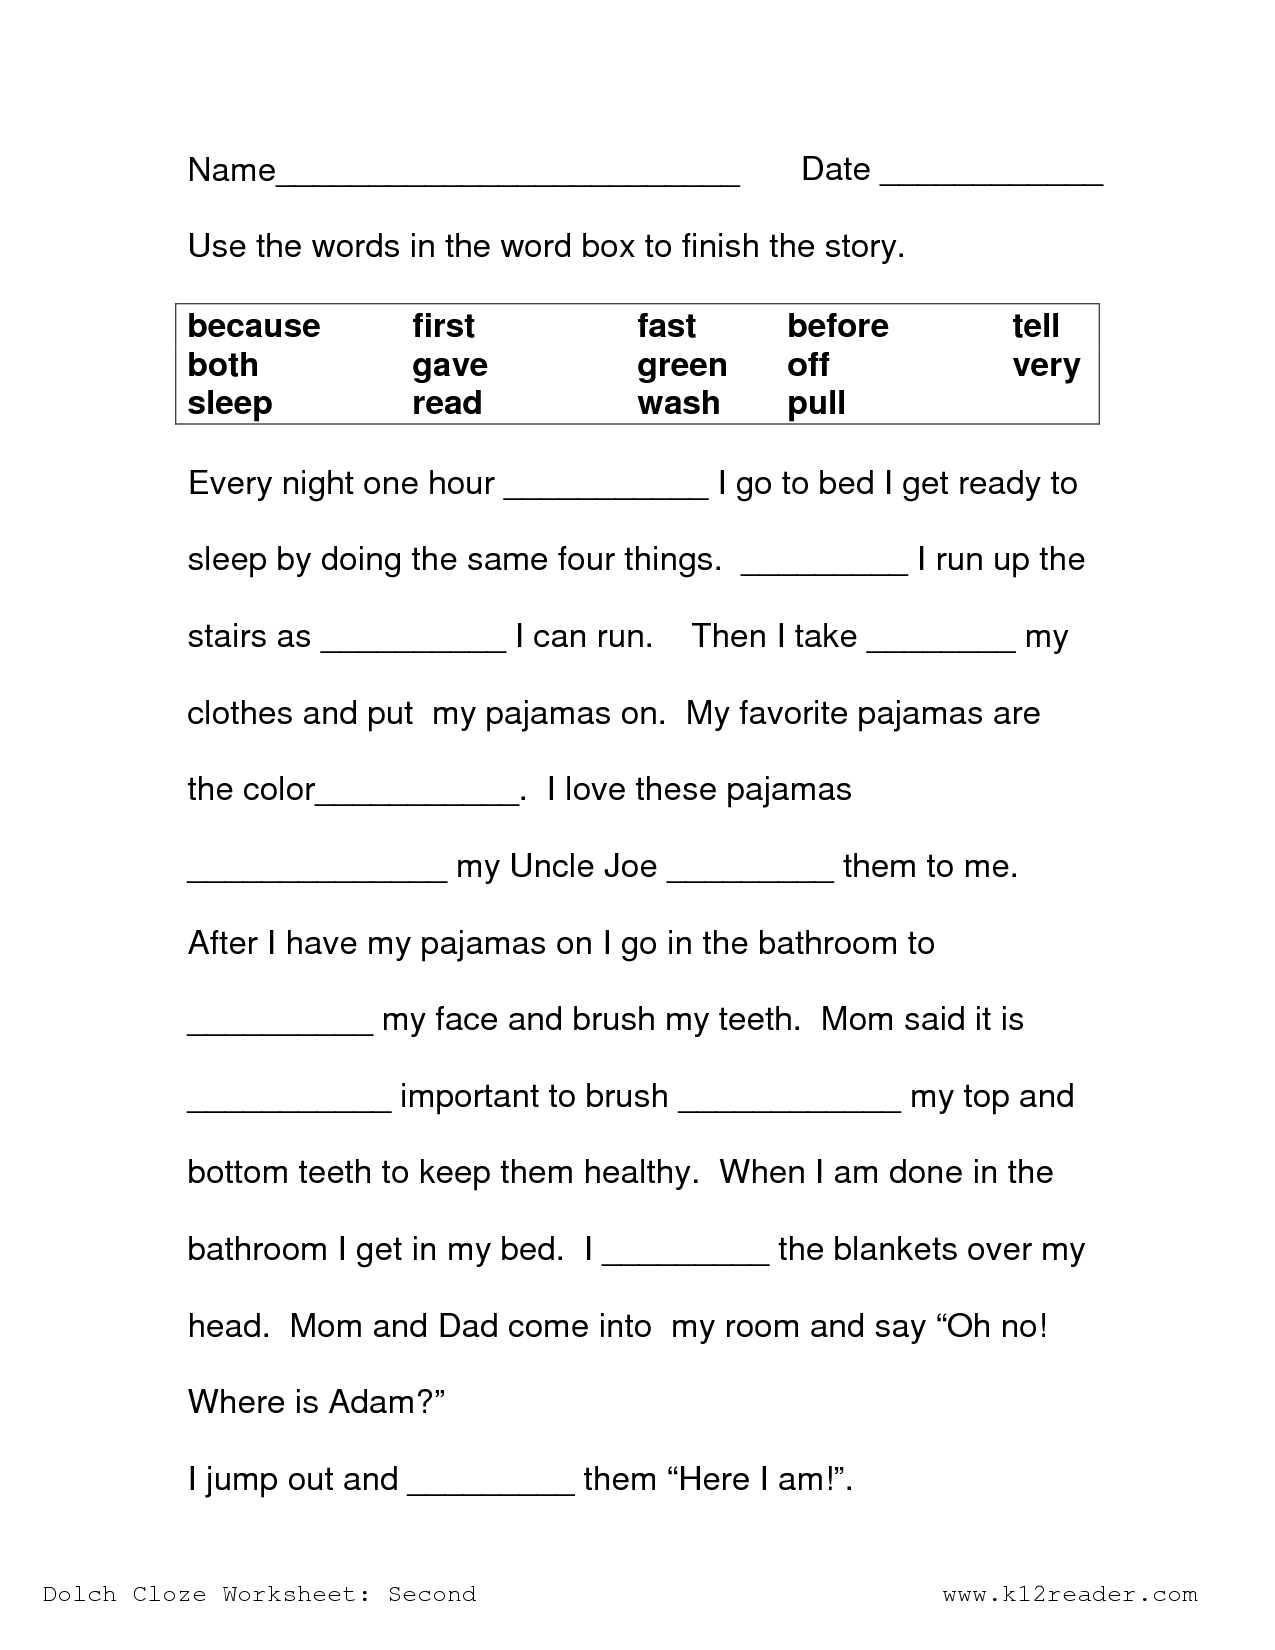 Free Printable Reading Comprehension Worksheets 3Rd Grade To Print - Free Printable Reading Comprehension Worksheets For 3Rd Grade